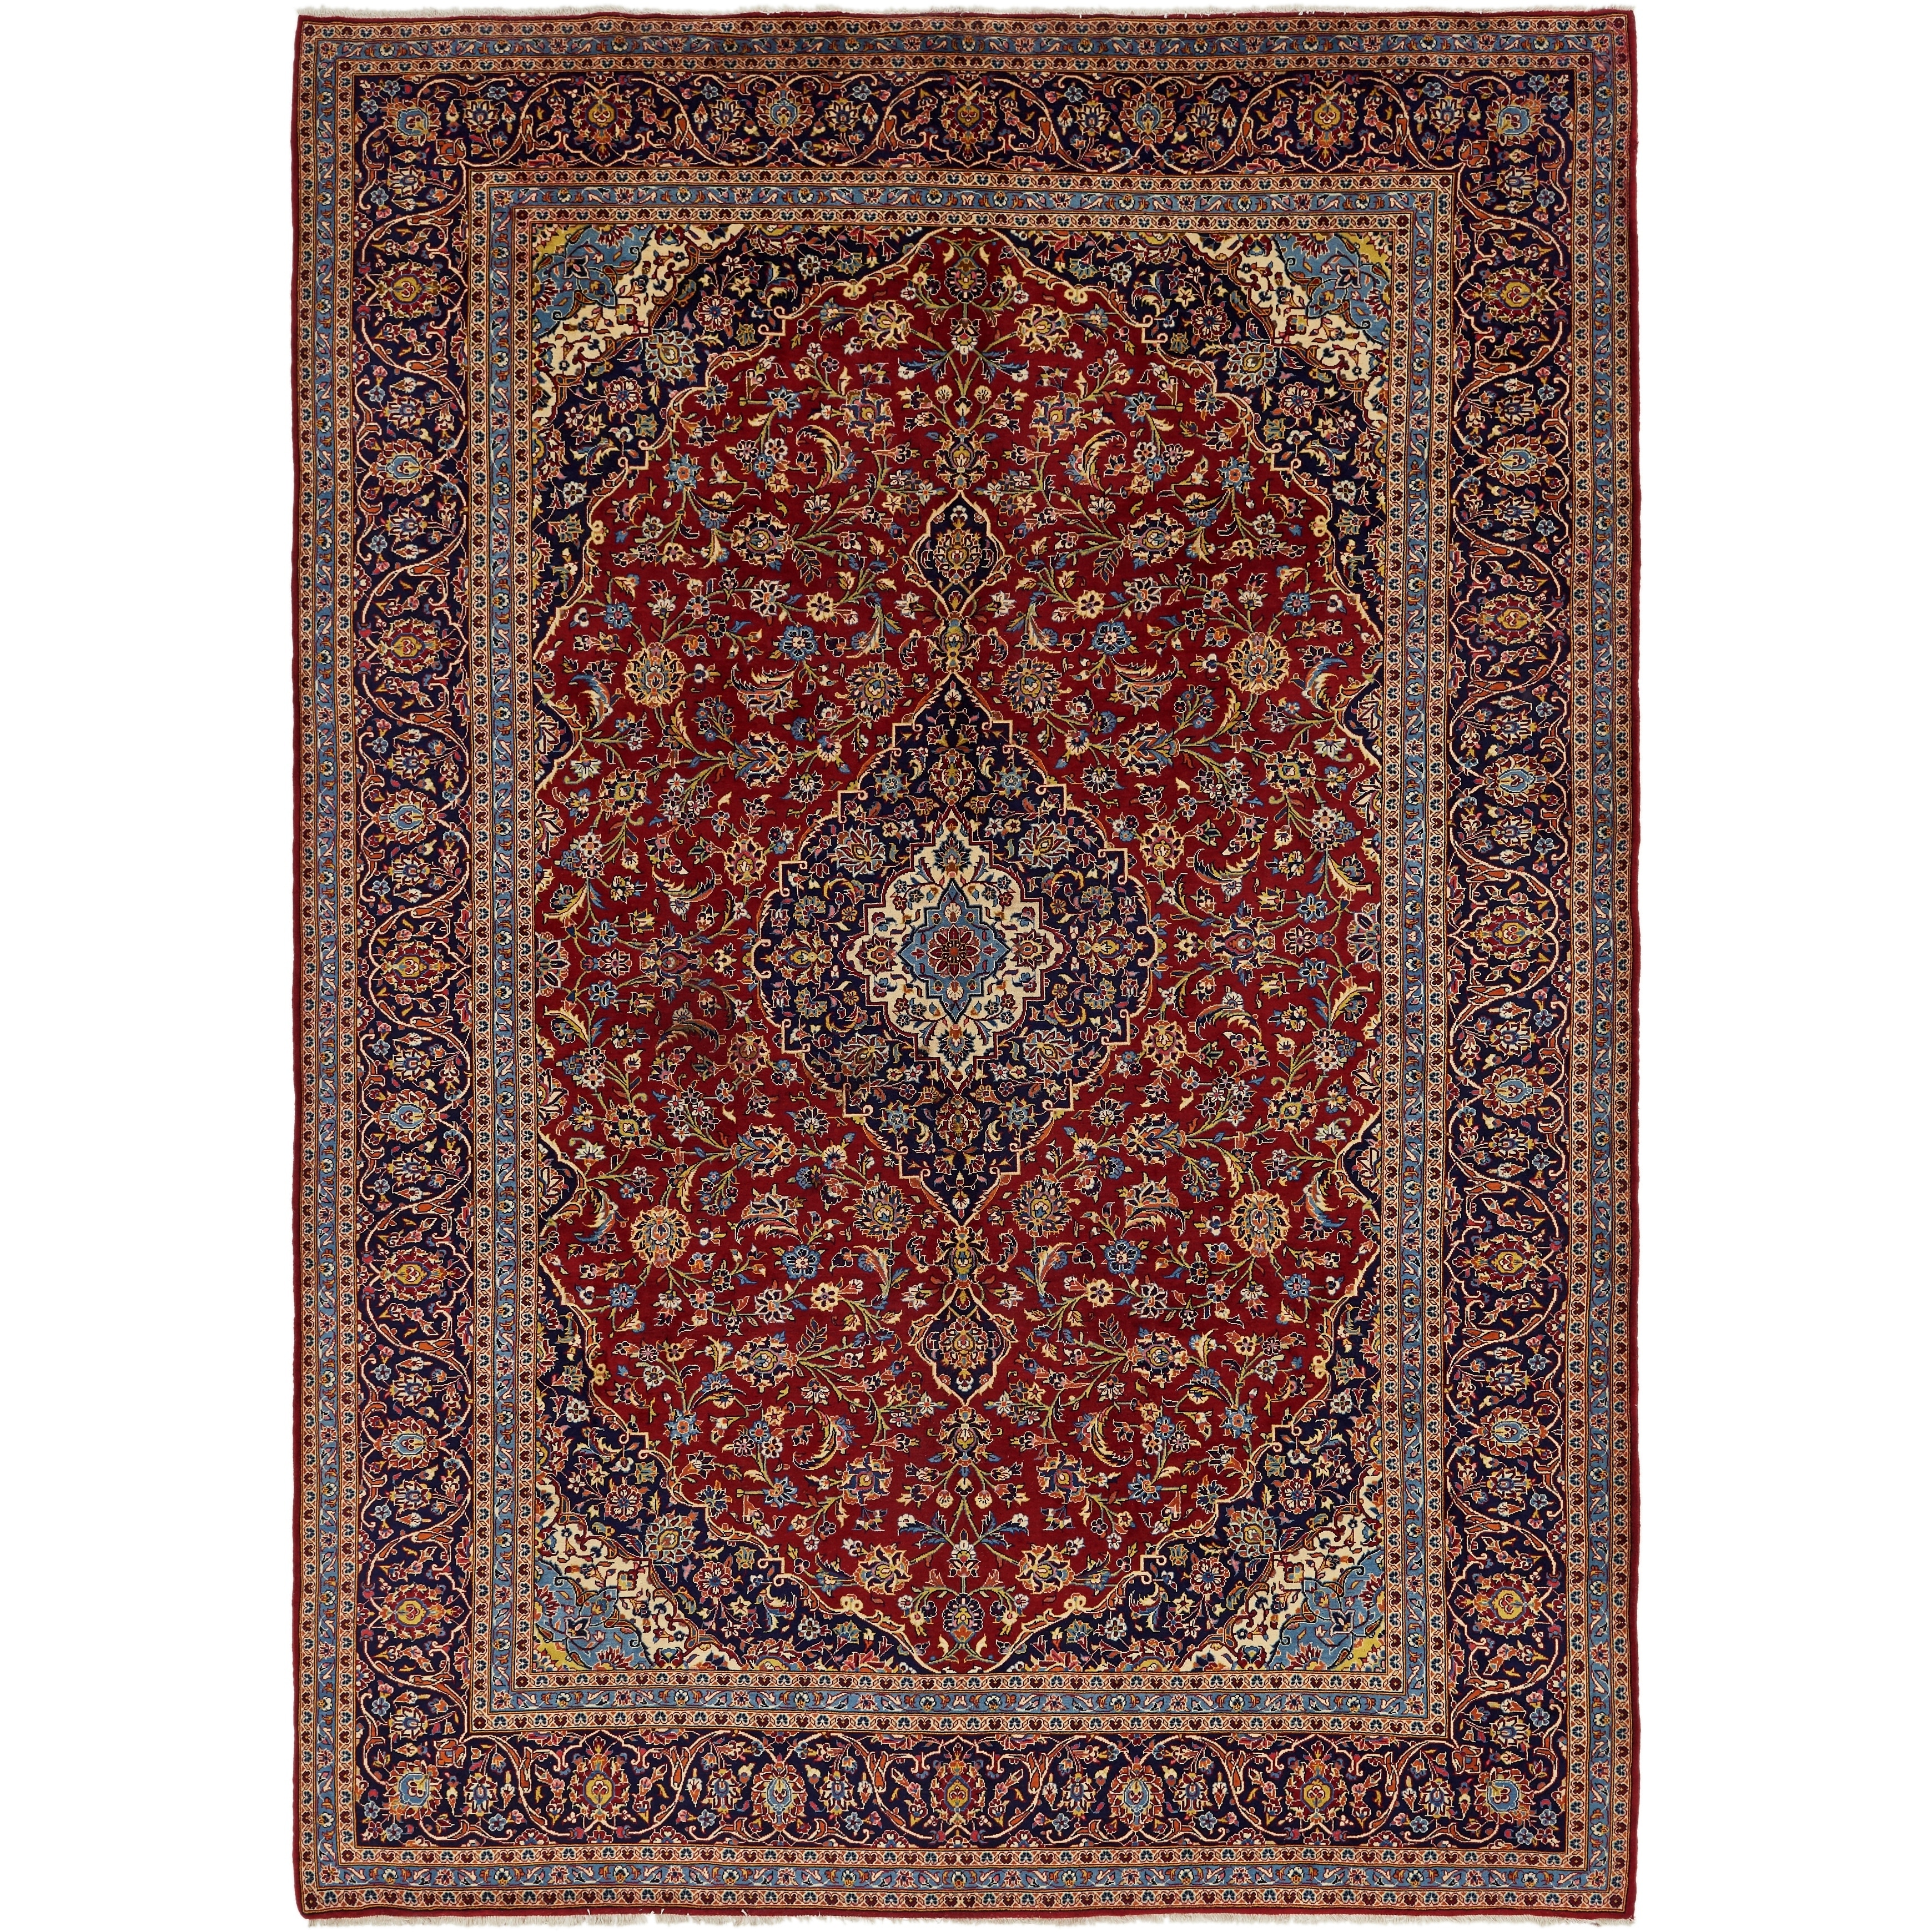 Hand Knotted Kashan Wool Area Rug - 9 8 x 14 2 (Red - 9 8 x 14 2)